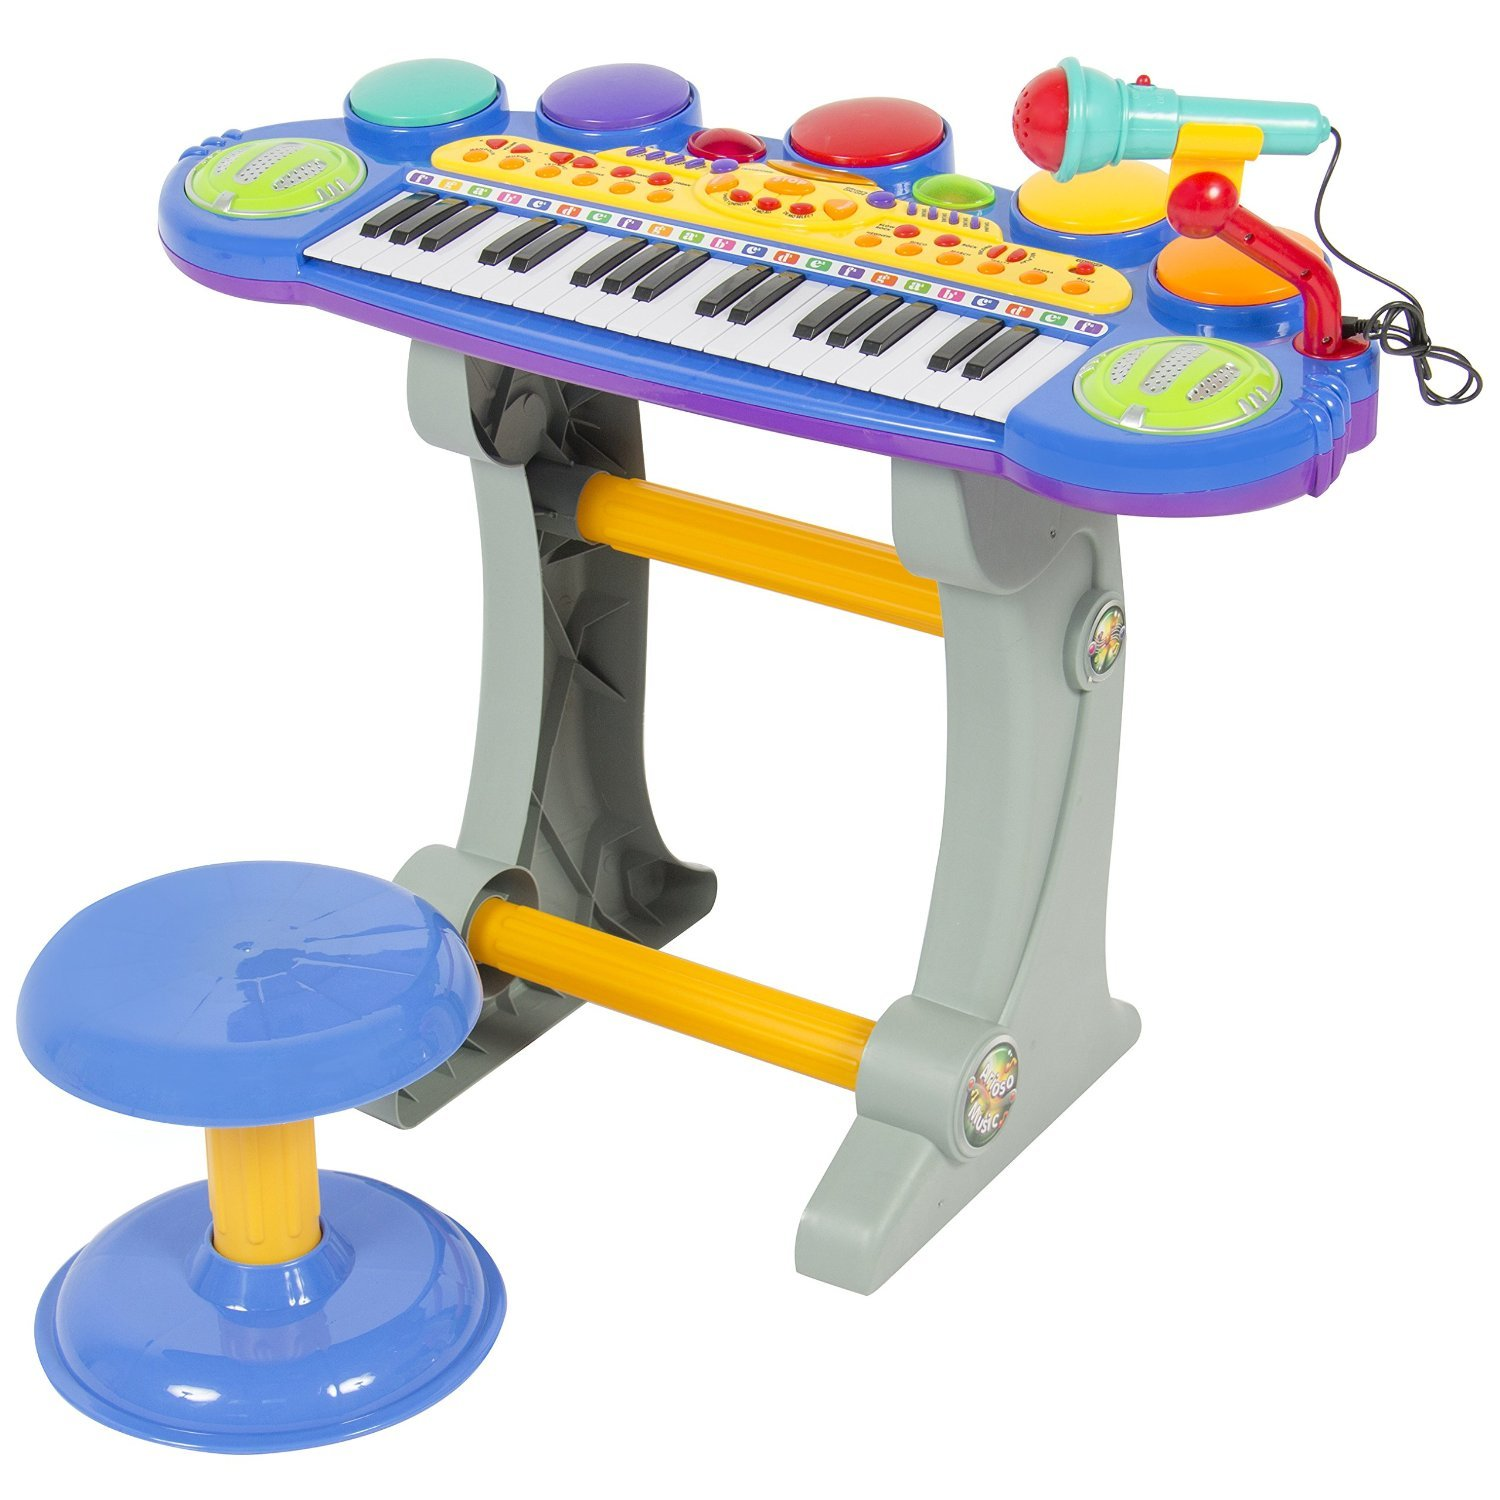 Kids Toddlers Musical Electronic Keyboard Piano